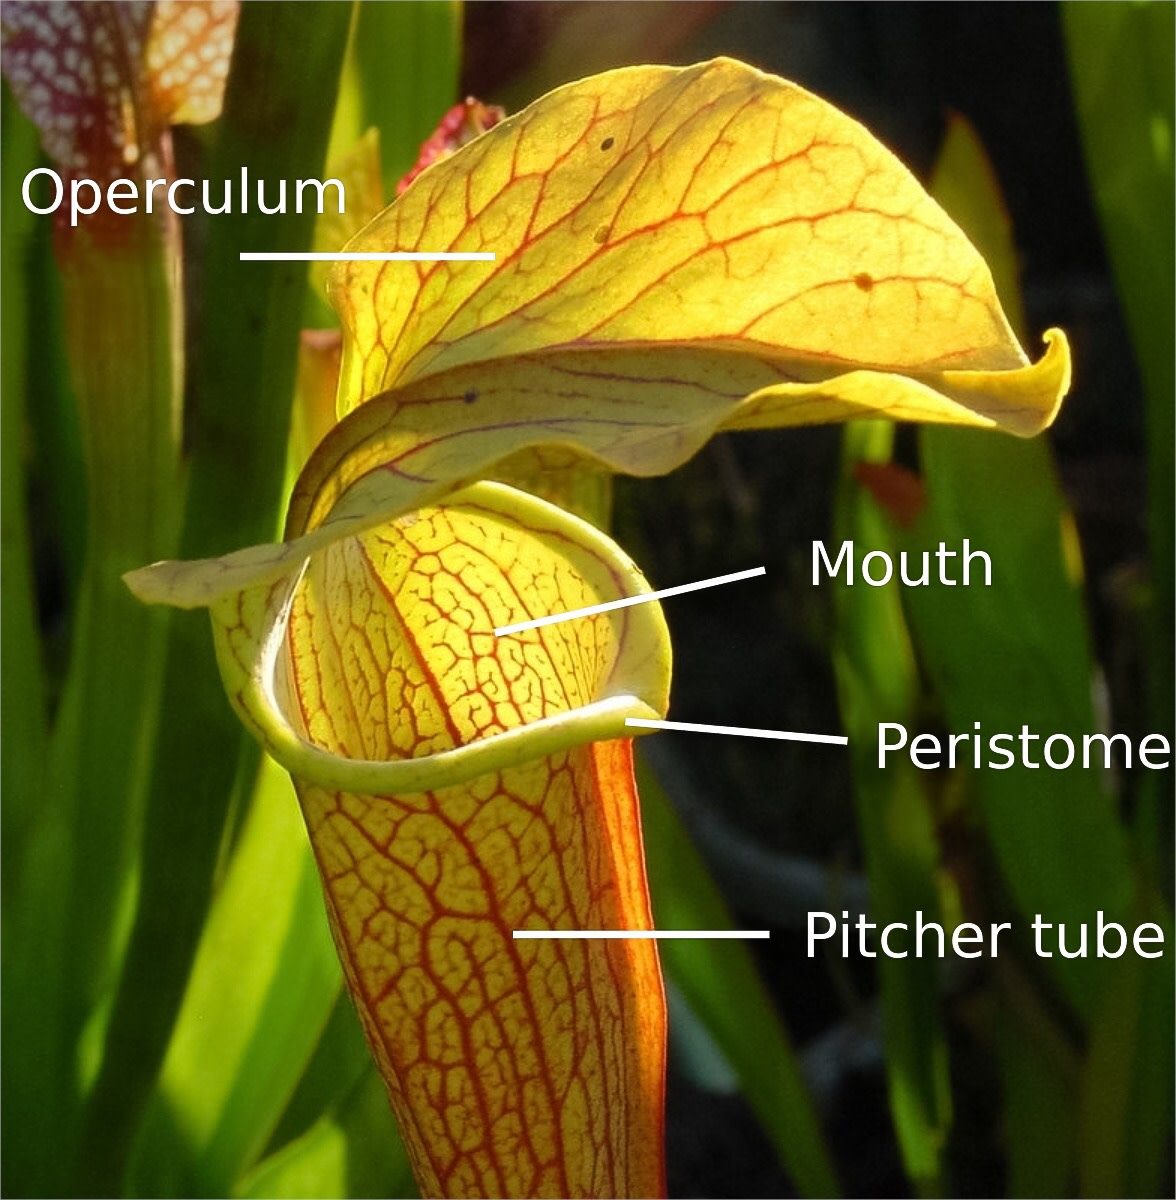 A species of Sarracenia, which is a type of pitcher plant